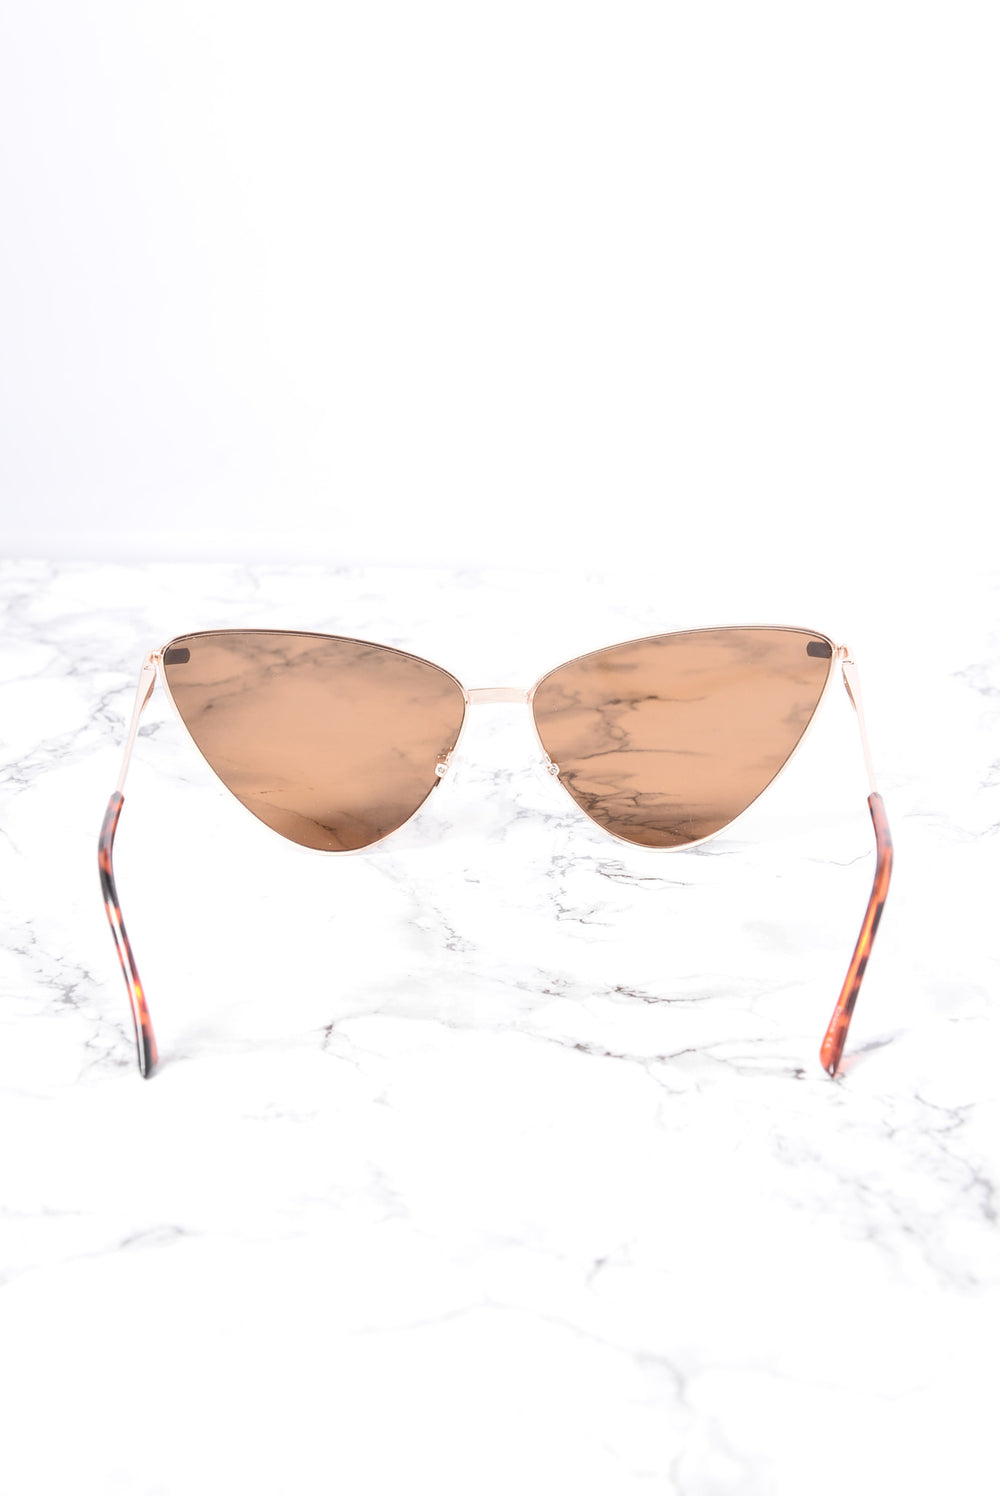 Bar Beach Sunglasses - Gold/Brown